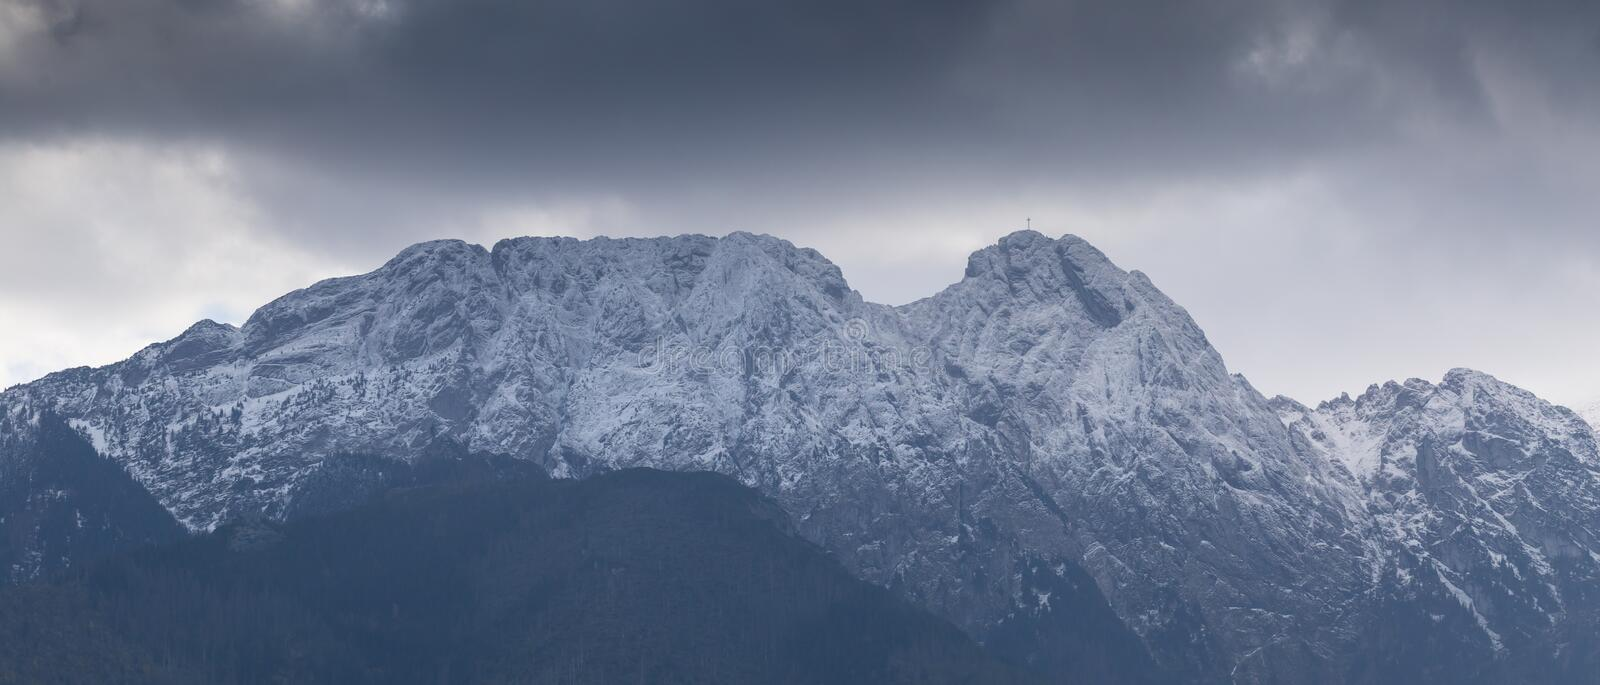 Dark clouds over the Giewont Mountain in polish Tatra Mountains near Zakopane in Poland.  stock photos